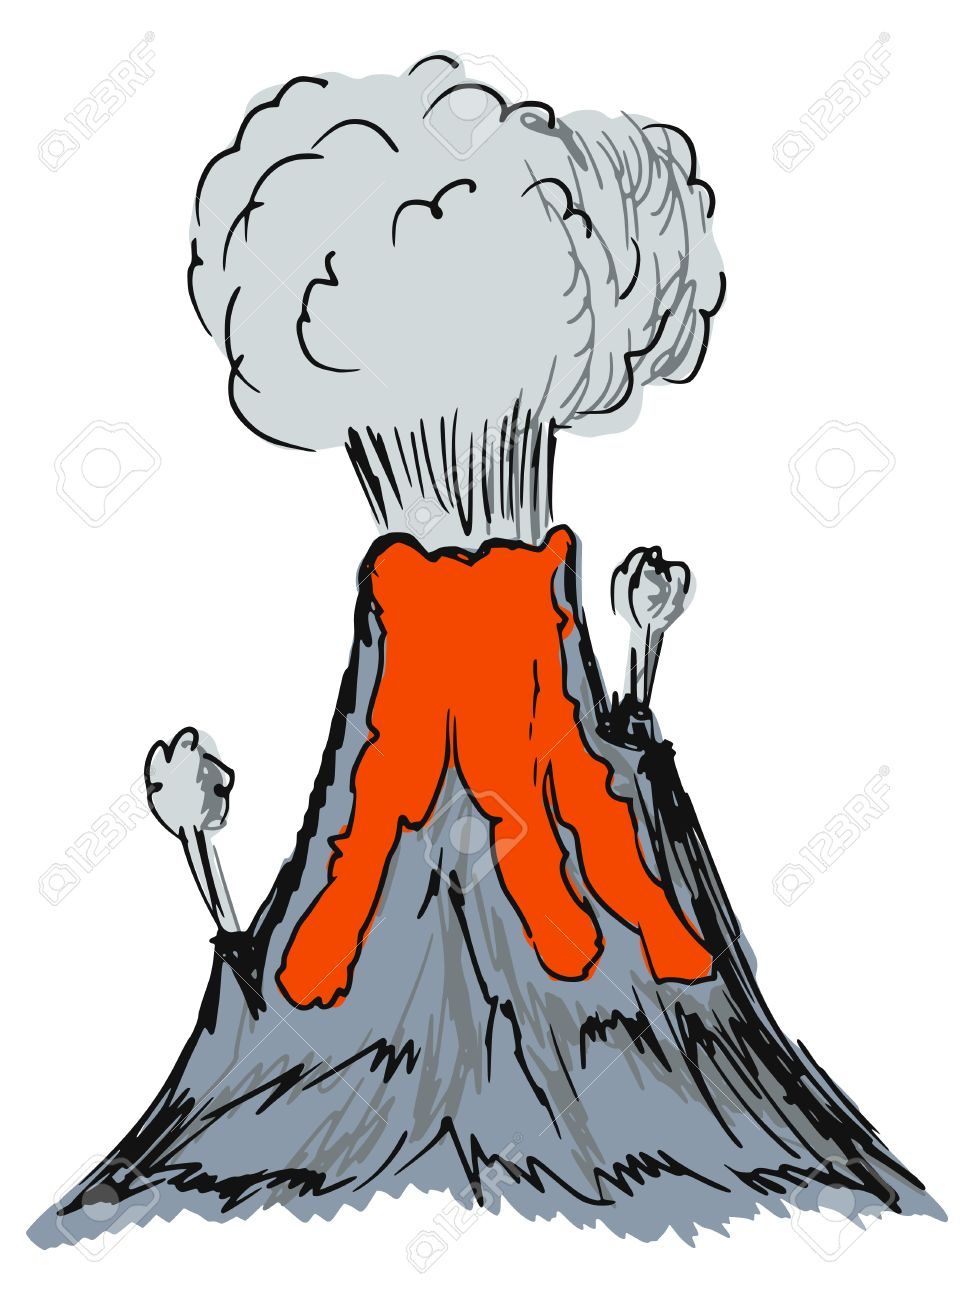 Hand drawn sketch cartoon illustration of volcano royalty free hand drawn sketch cartoon illustration of volcano stock vector 27347368 ccuart Images